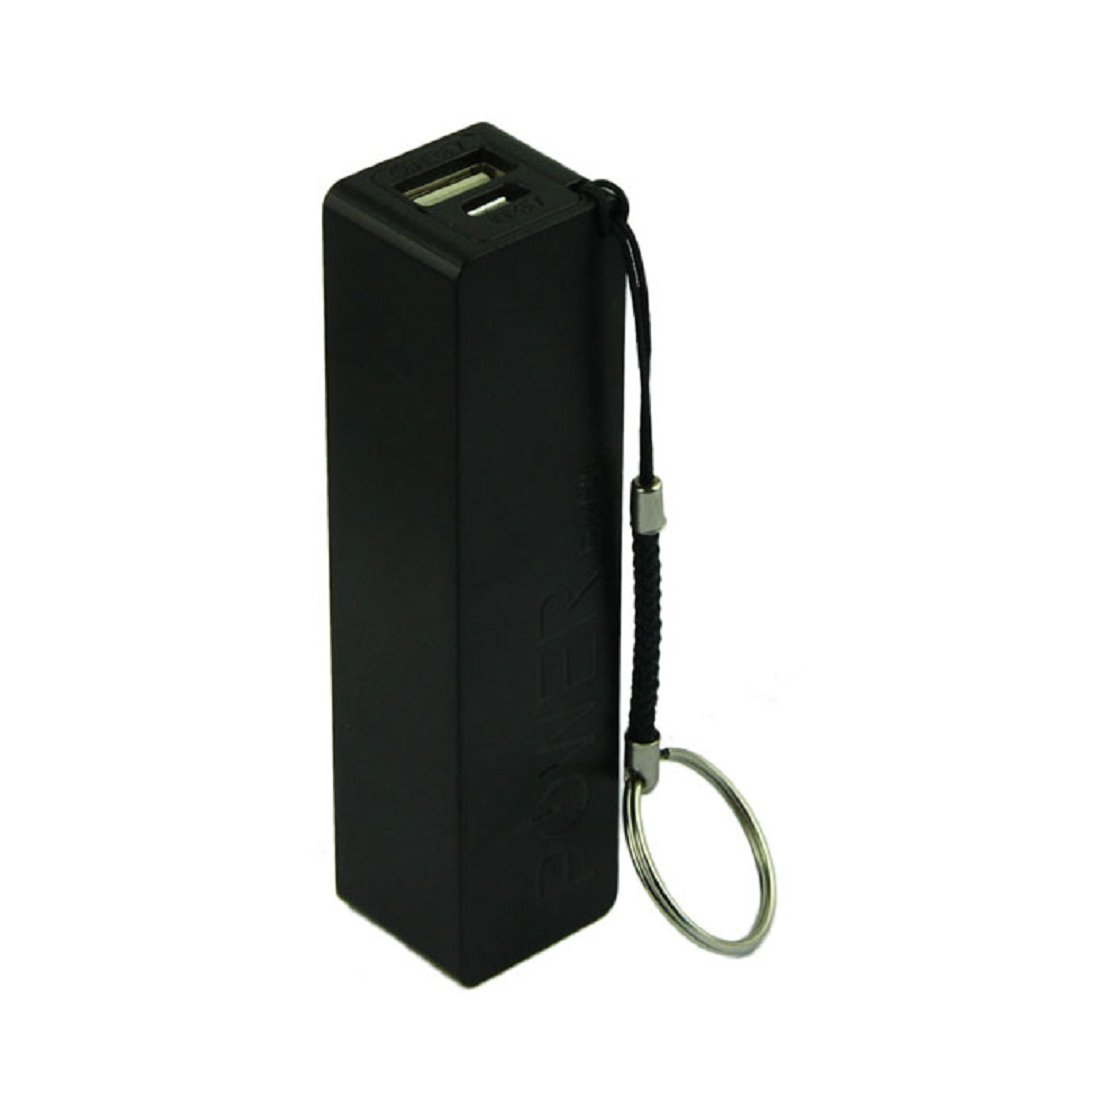 Perman Portable Power Bank 18650 Battery External Backup Battery Charger With Key Chain (Black)